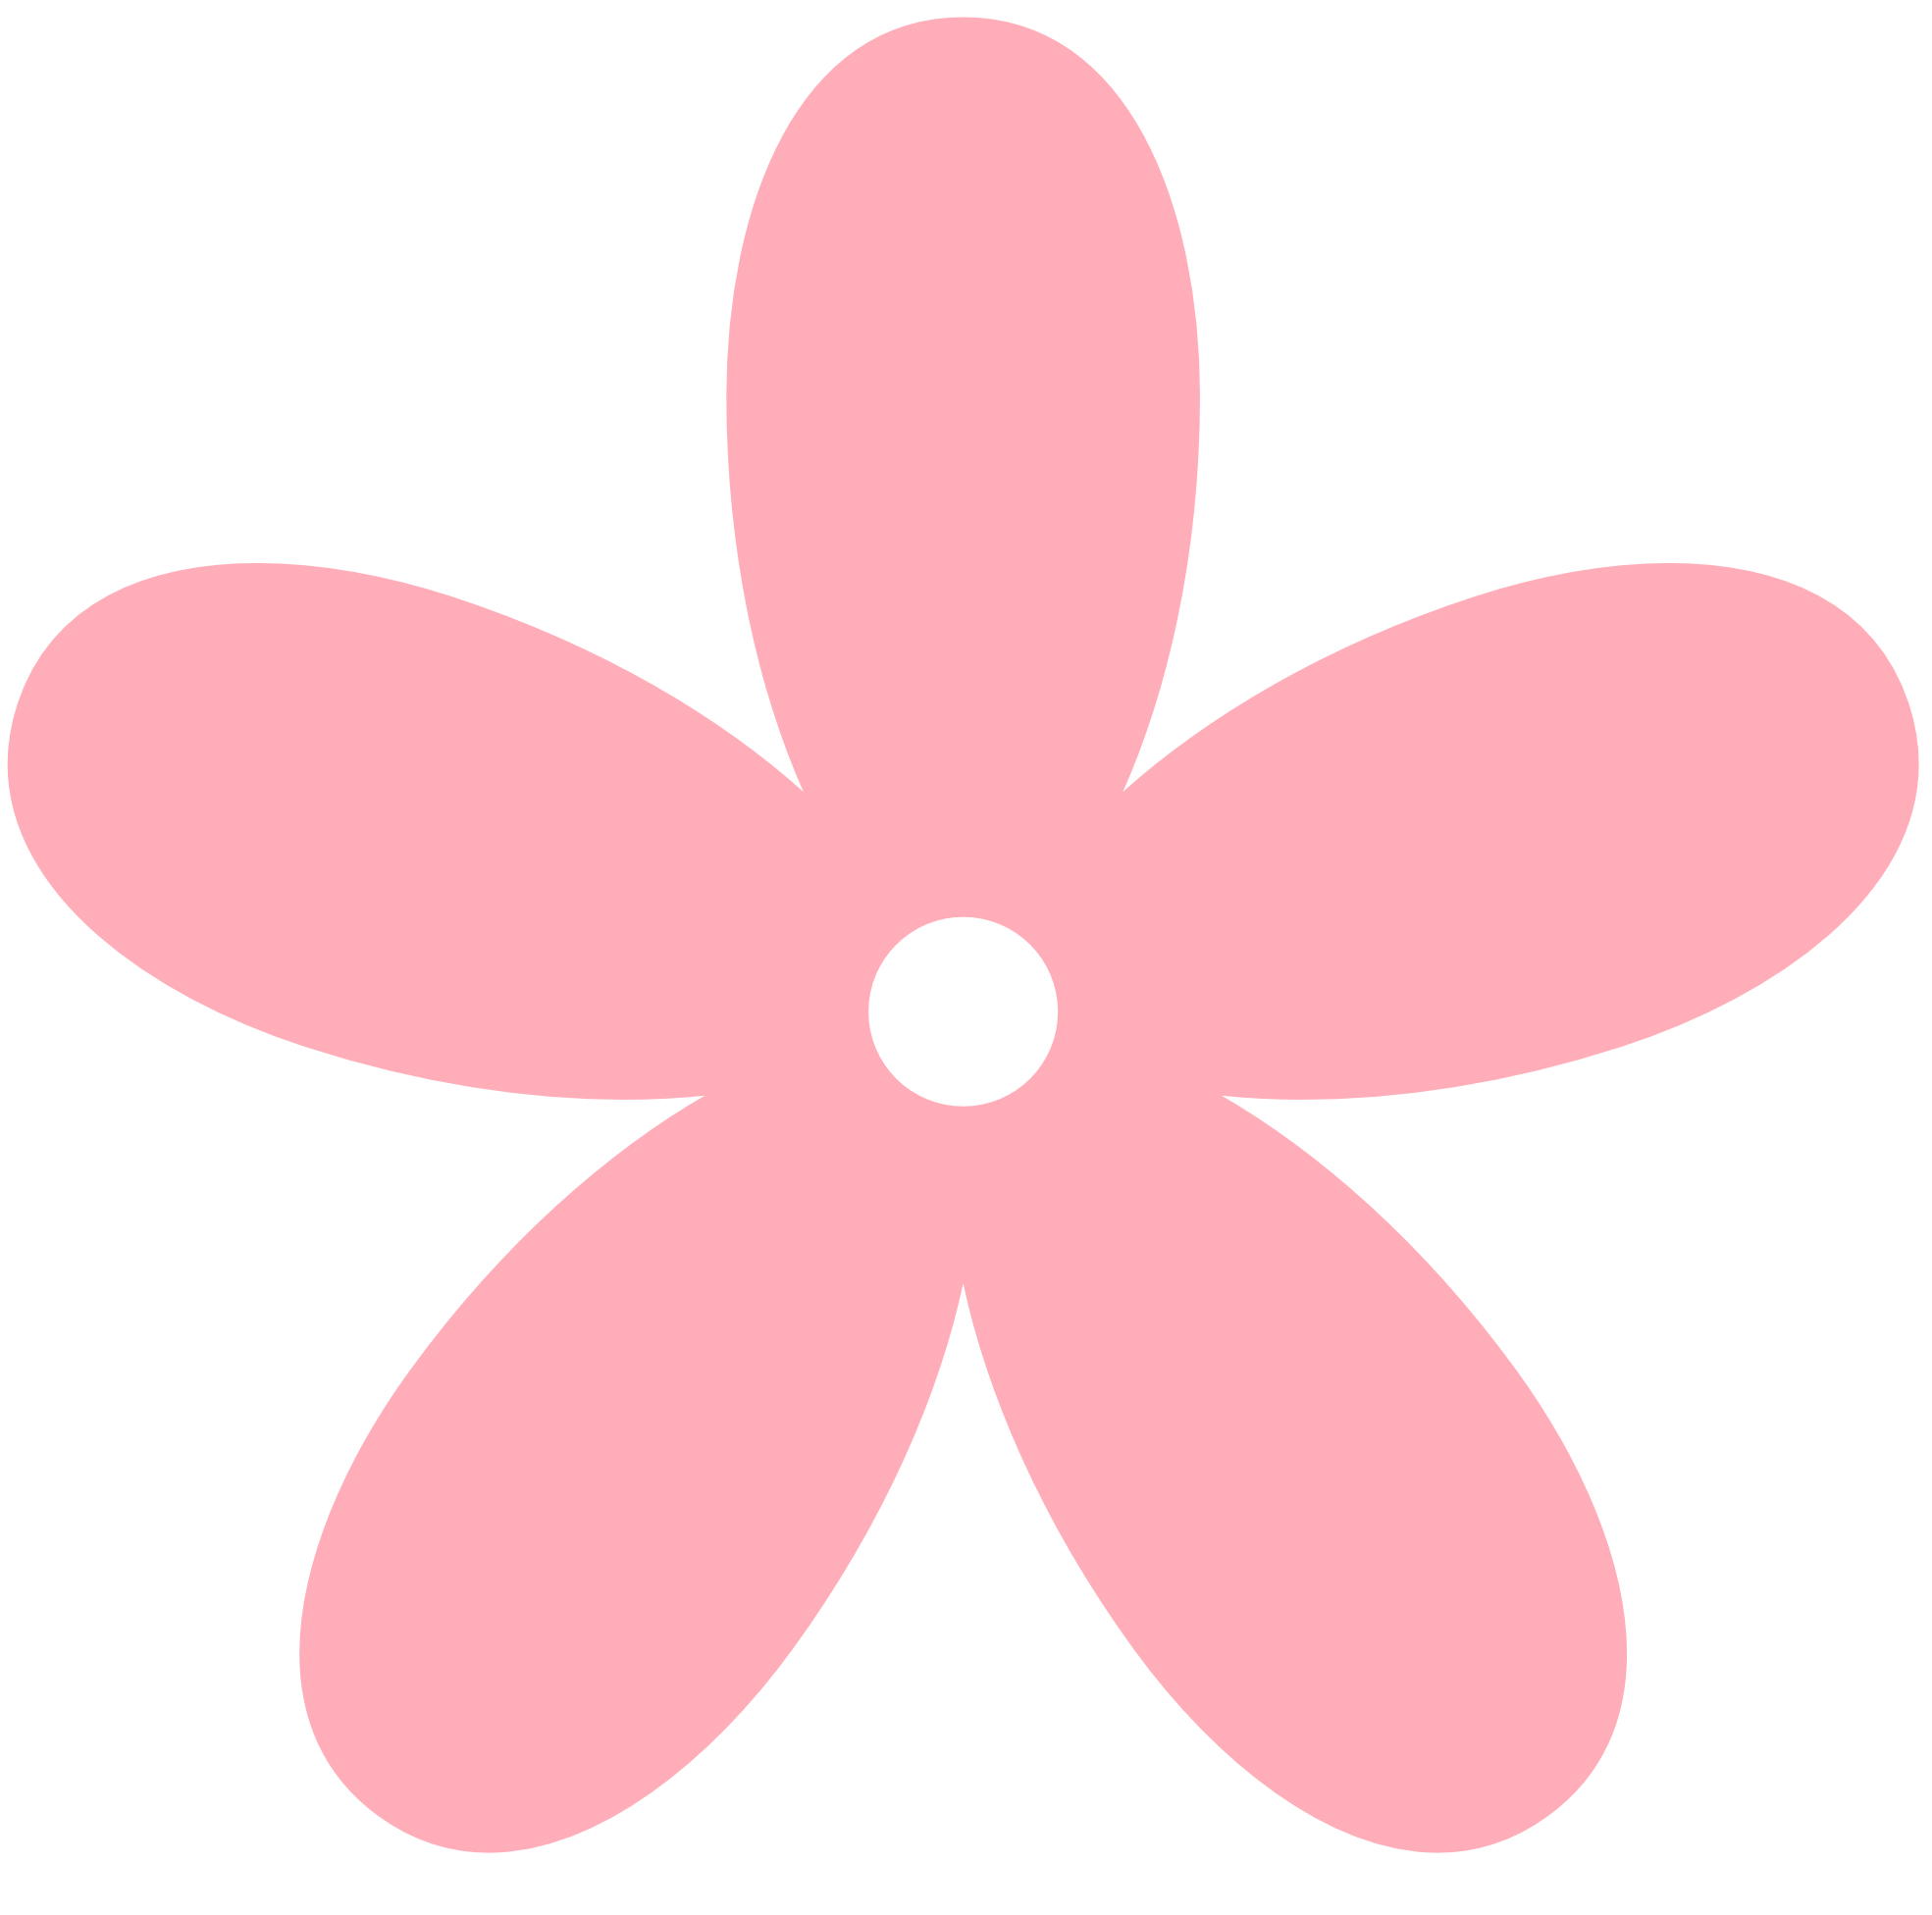 Pink flowers clipart png. Light flower